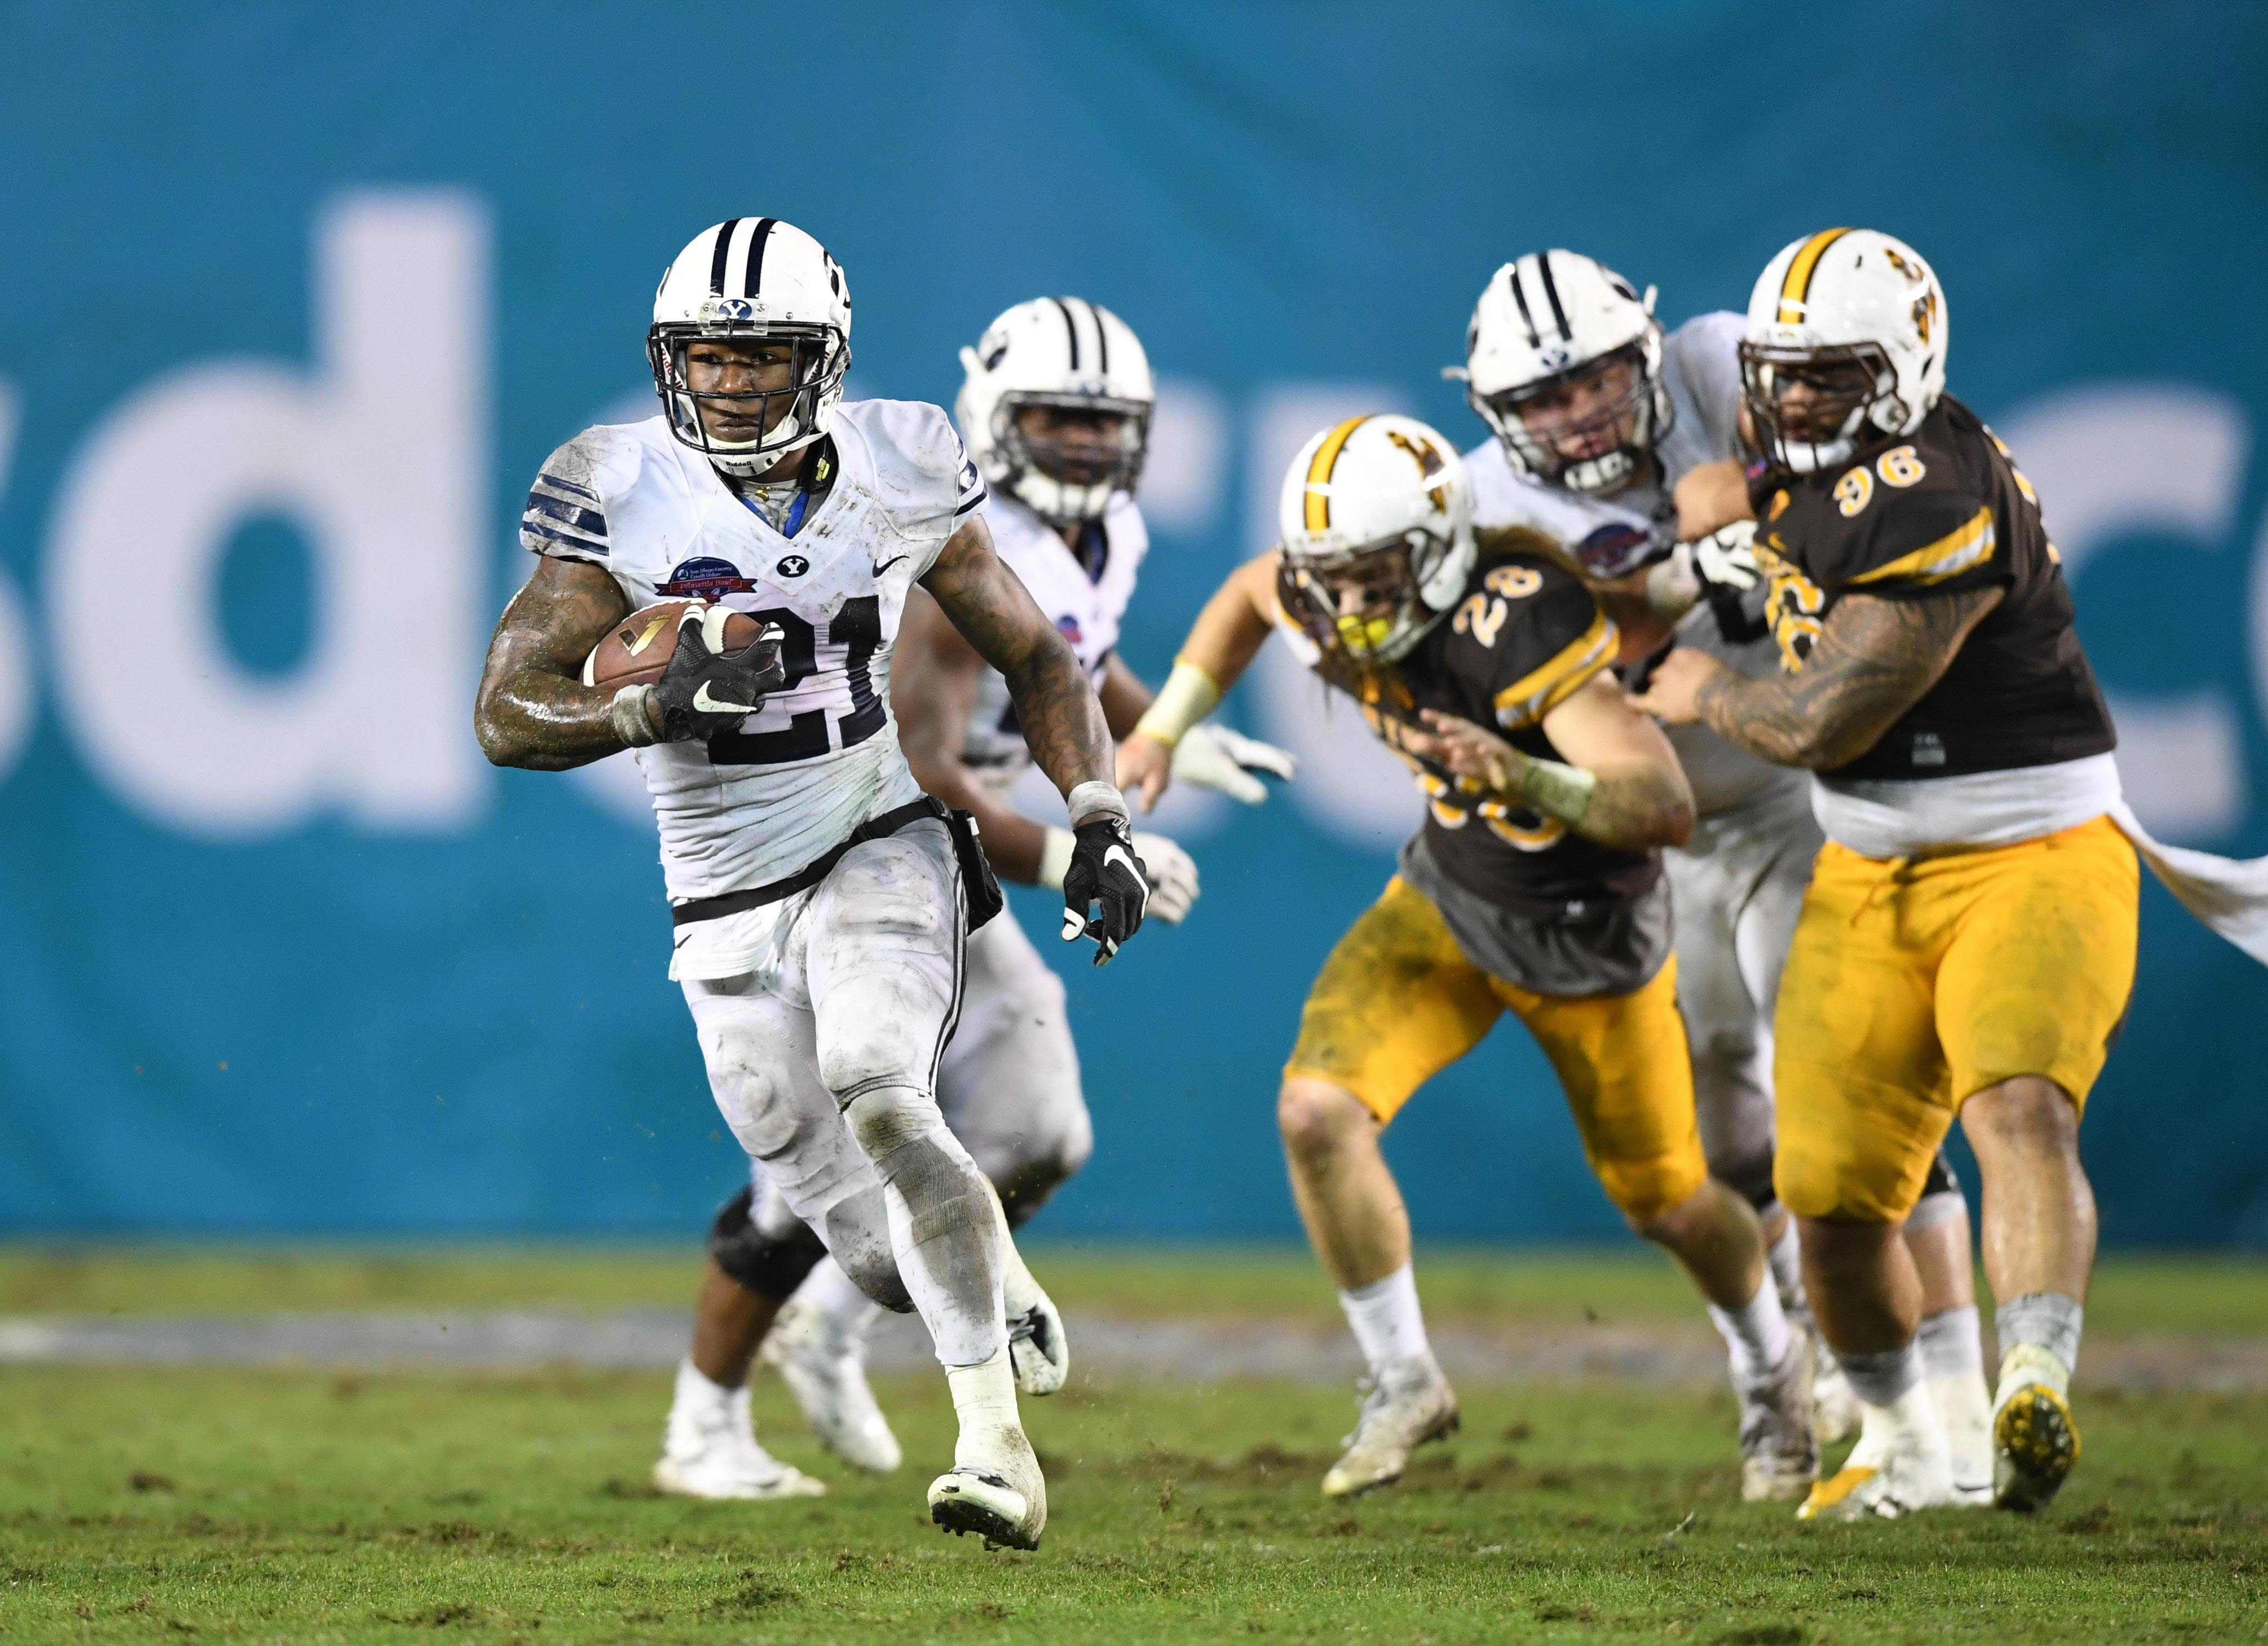 9768033-ncaa-football-poinsettia-bowl-brigham-young-vs-wyoming